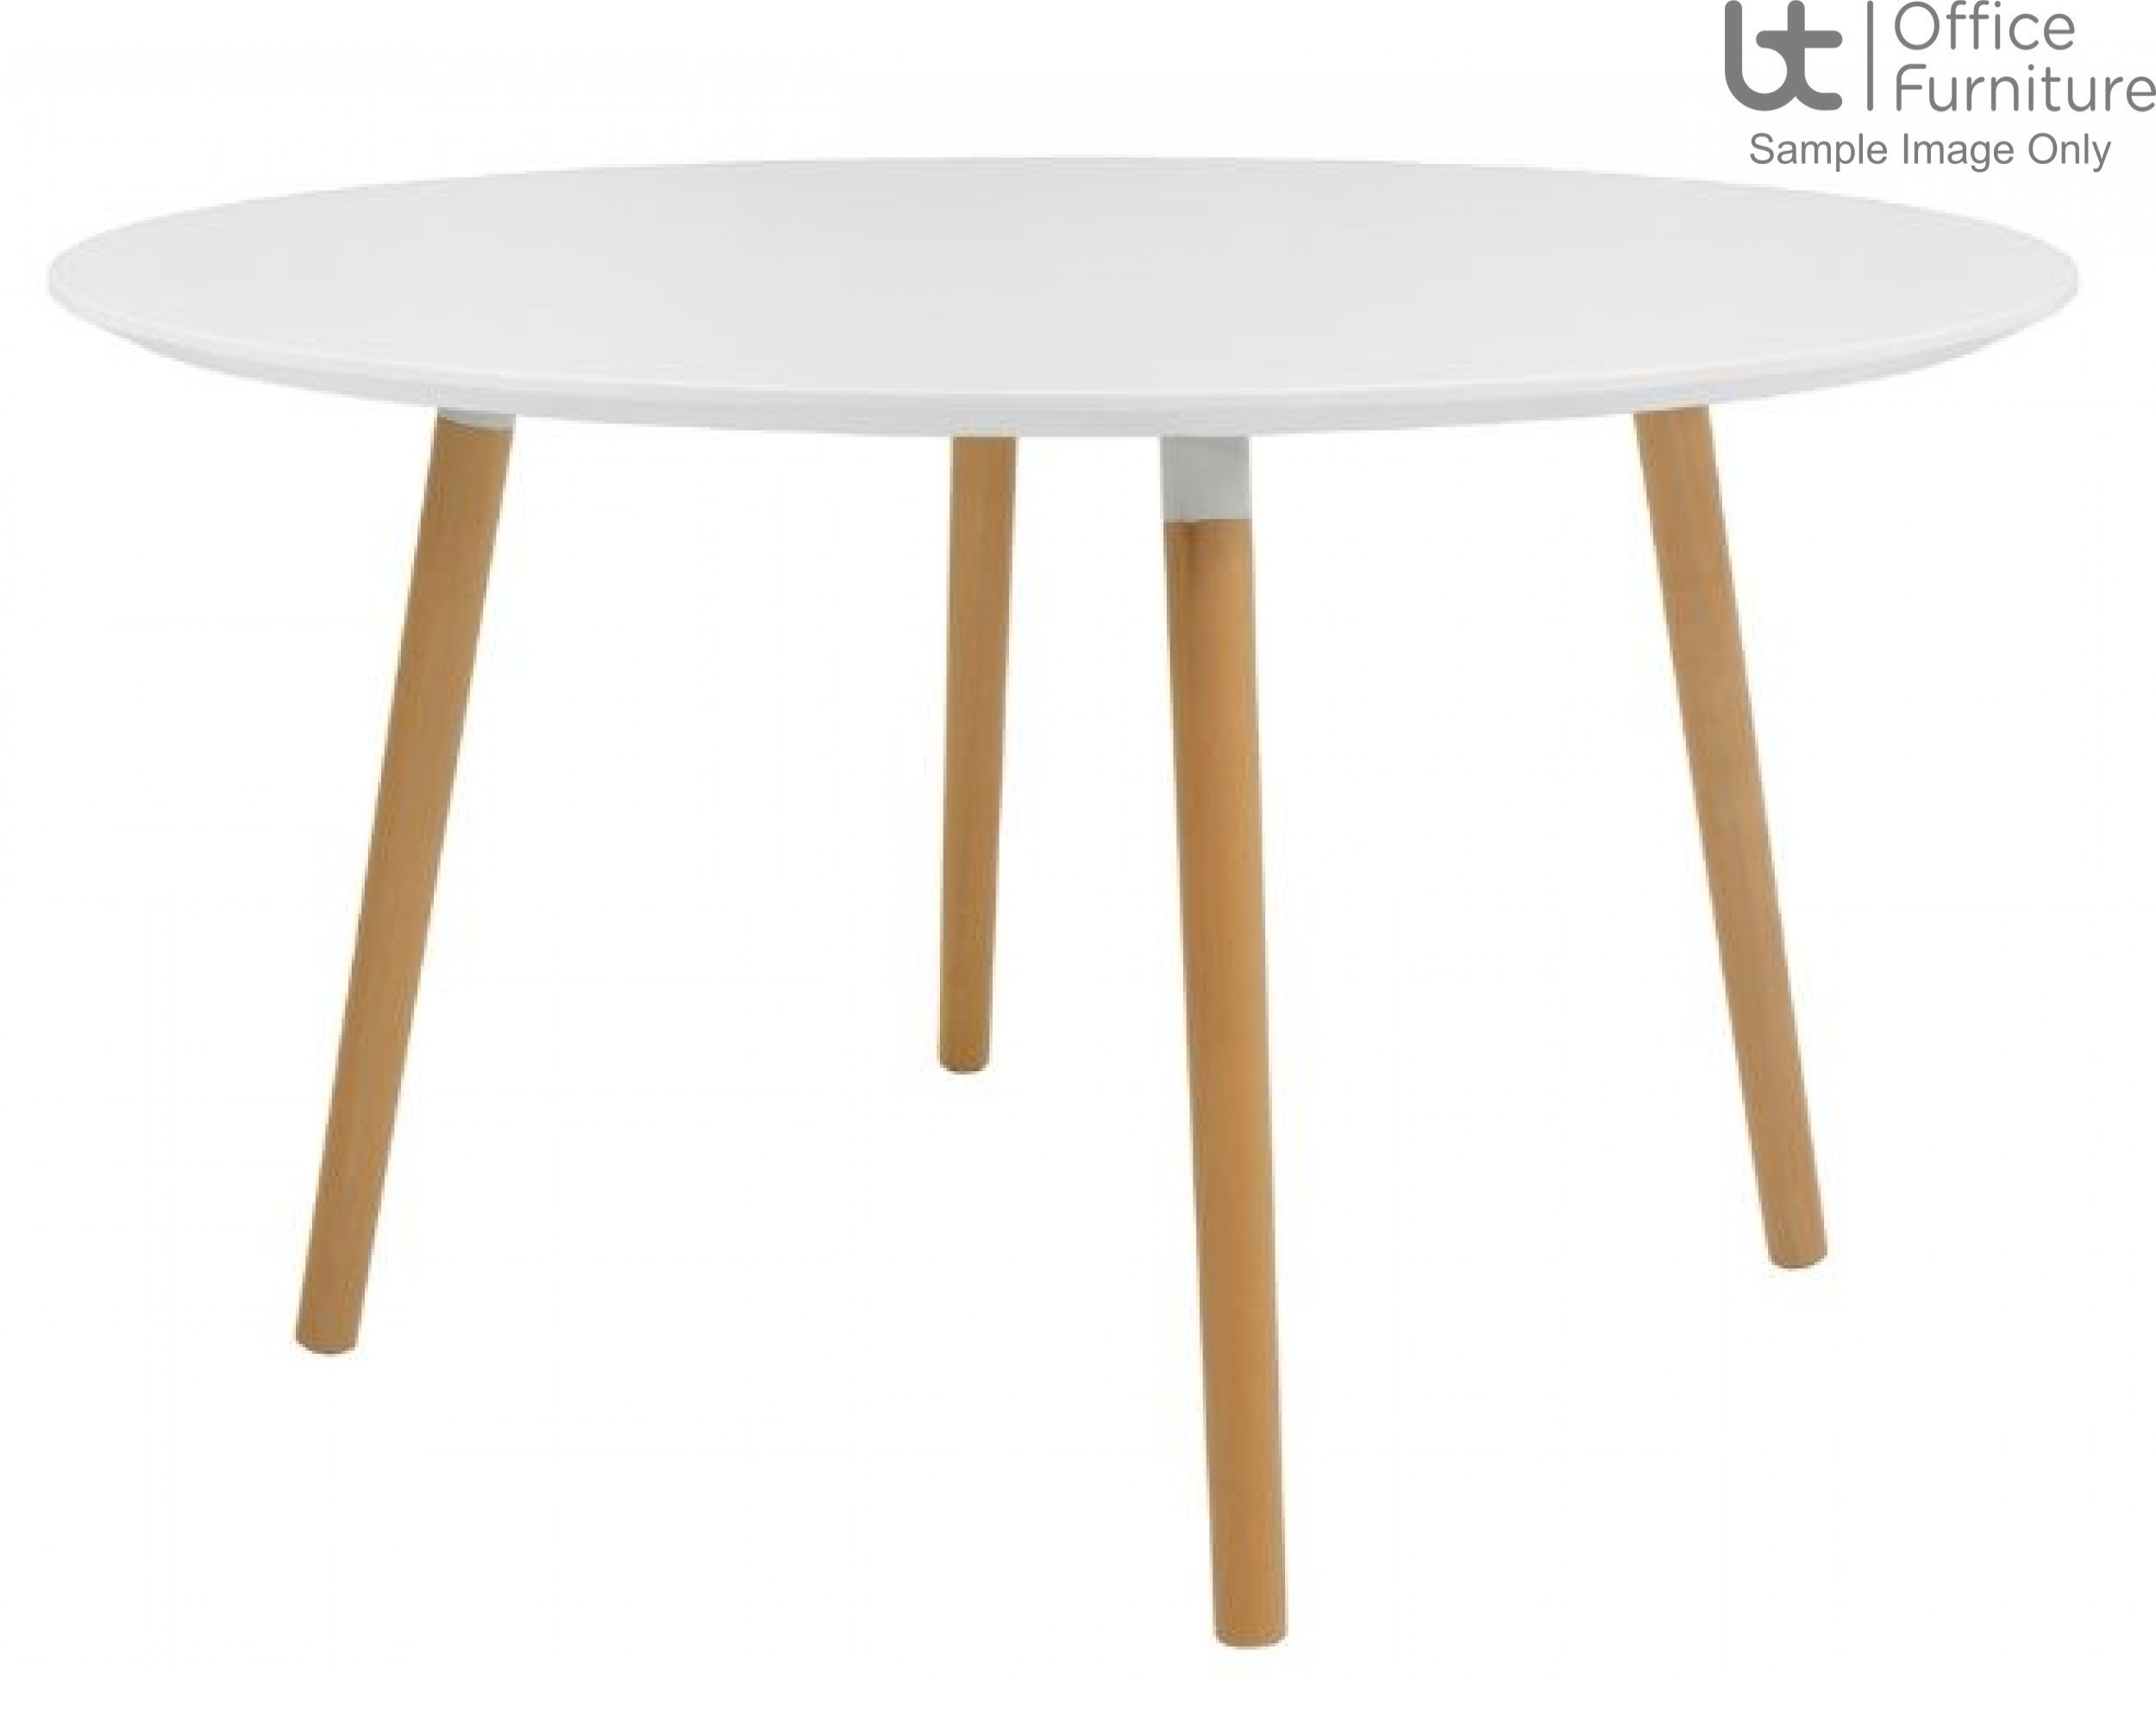 Elite Modular Meeting Table - Tondo Circular Table with round Solid Beech Wooden Legs & White Tops